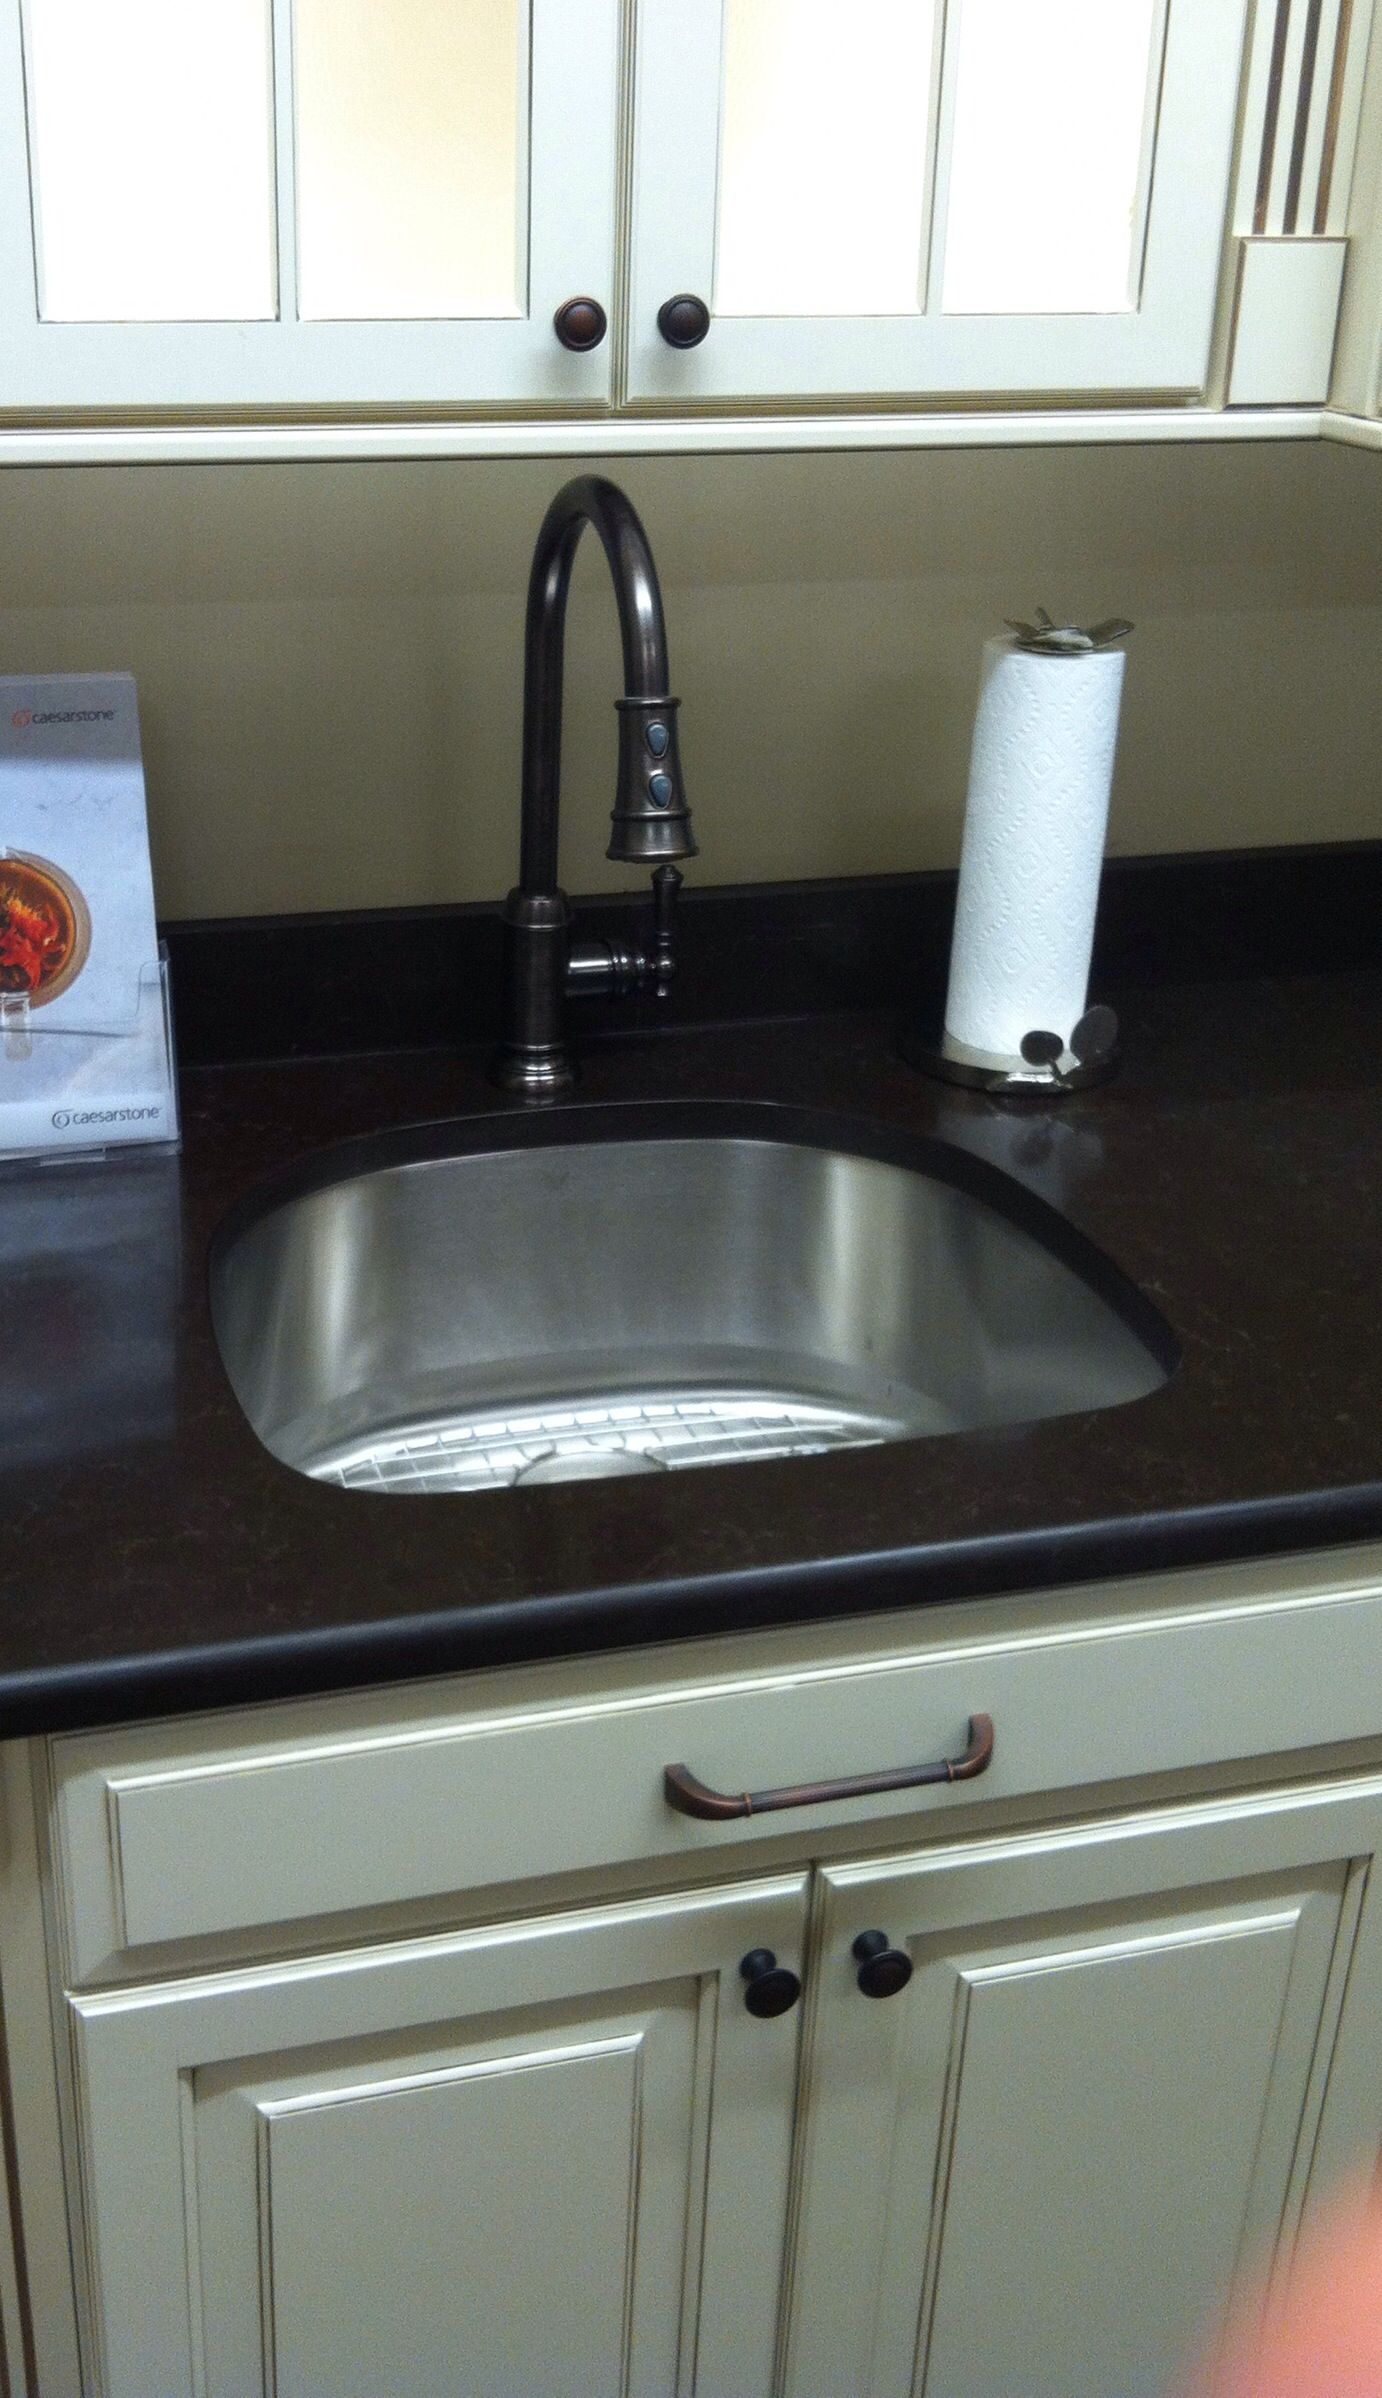 Artisan Brand Ar 2321 Stainless Sink With Artisan Faucet. Great Look With  Lasting Quality.